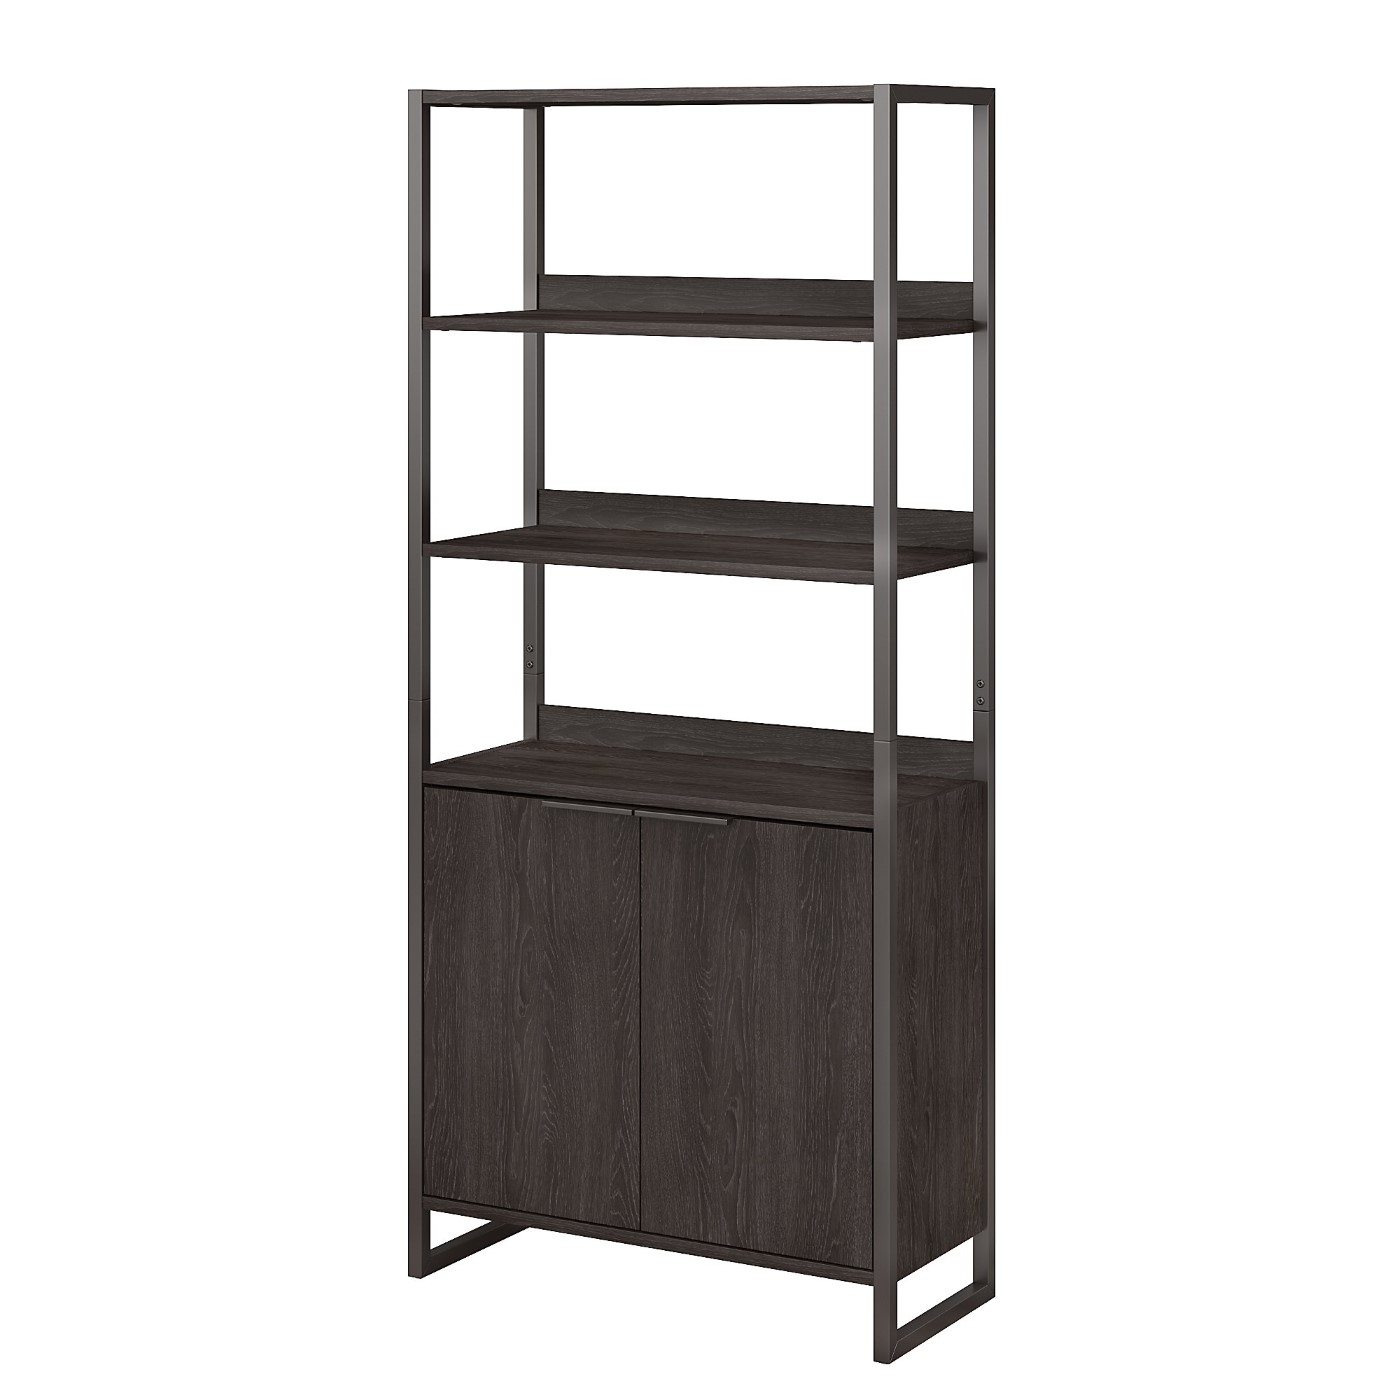 The kathy ireland� Atria 5 Shelf Bookcase with Doors is Sustainable Eco Friendly Furniture. Includes Free Shipping! 30H x 72L x 72W.